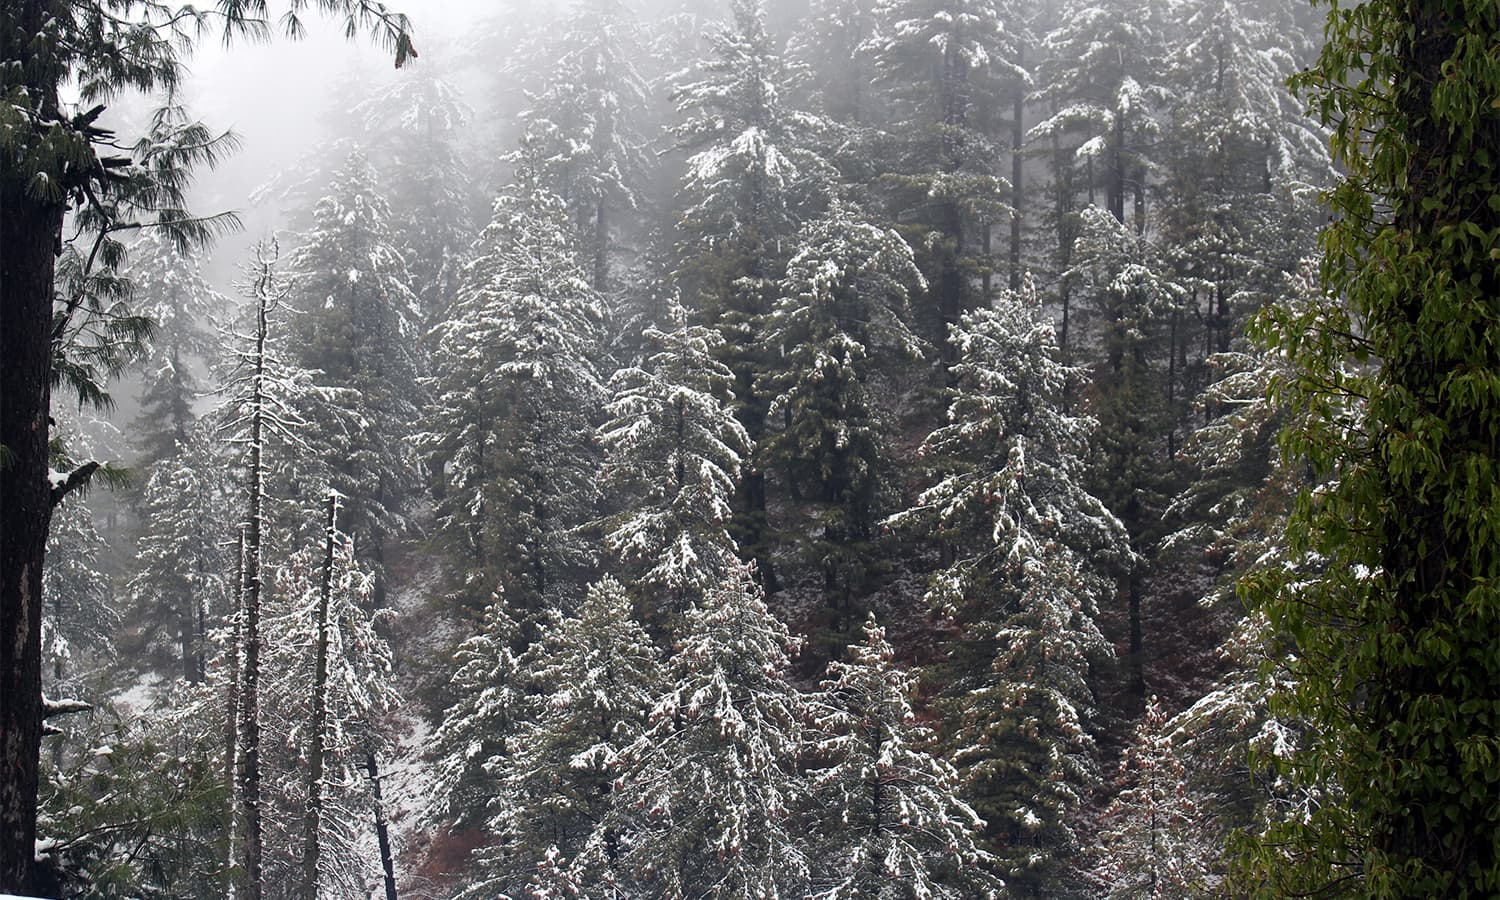 Trees are sprinkled with snow in Shangla.— Umar Bacha